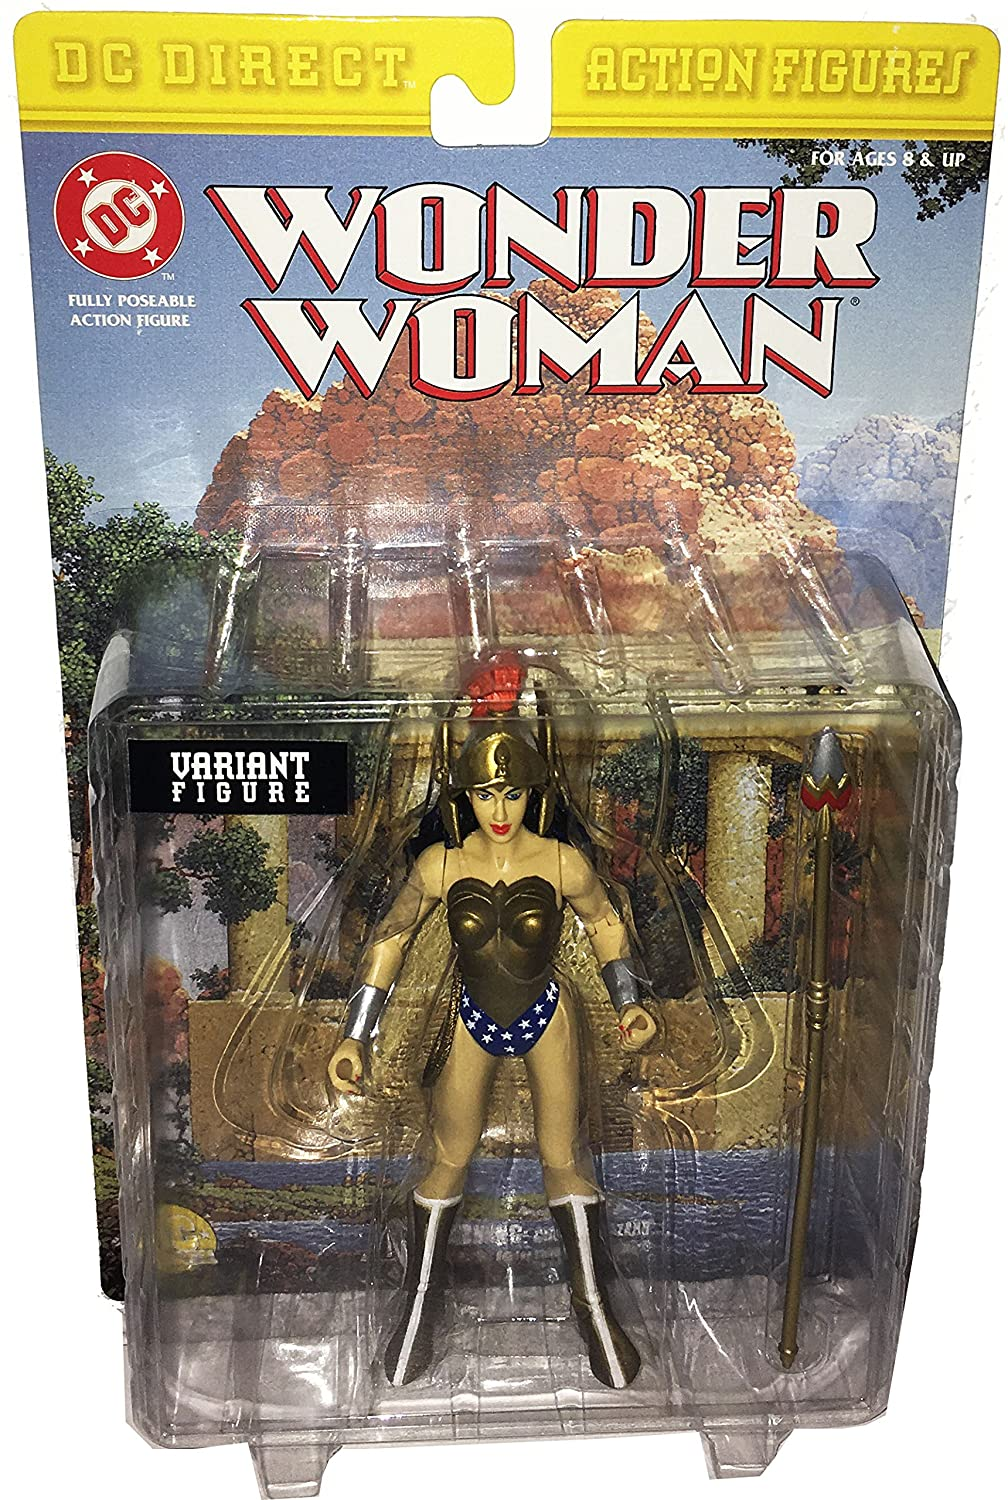 DC Direct Action Figures WONDER Damenschuhe: Fully Poseable Action Figure - VARIANT FIGURE